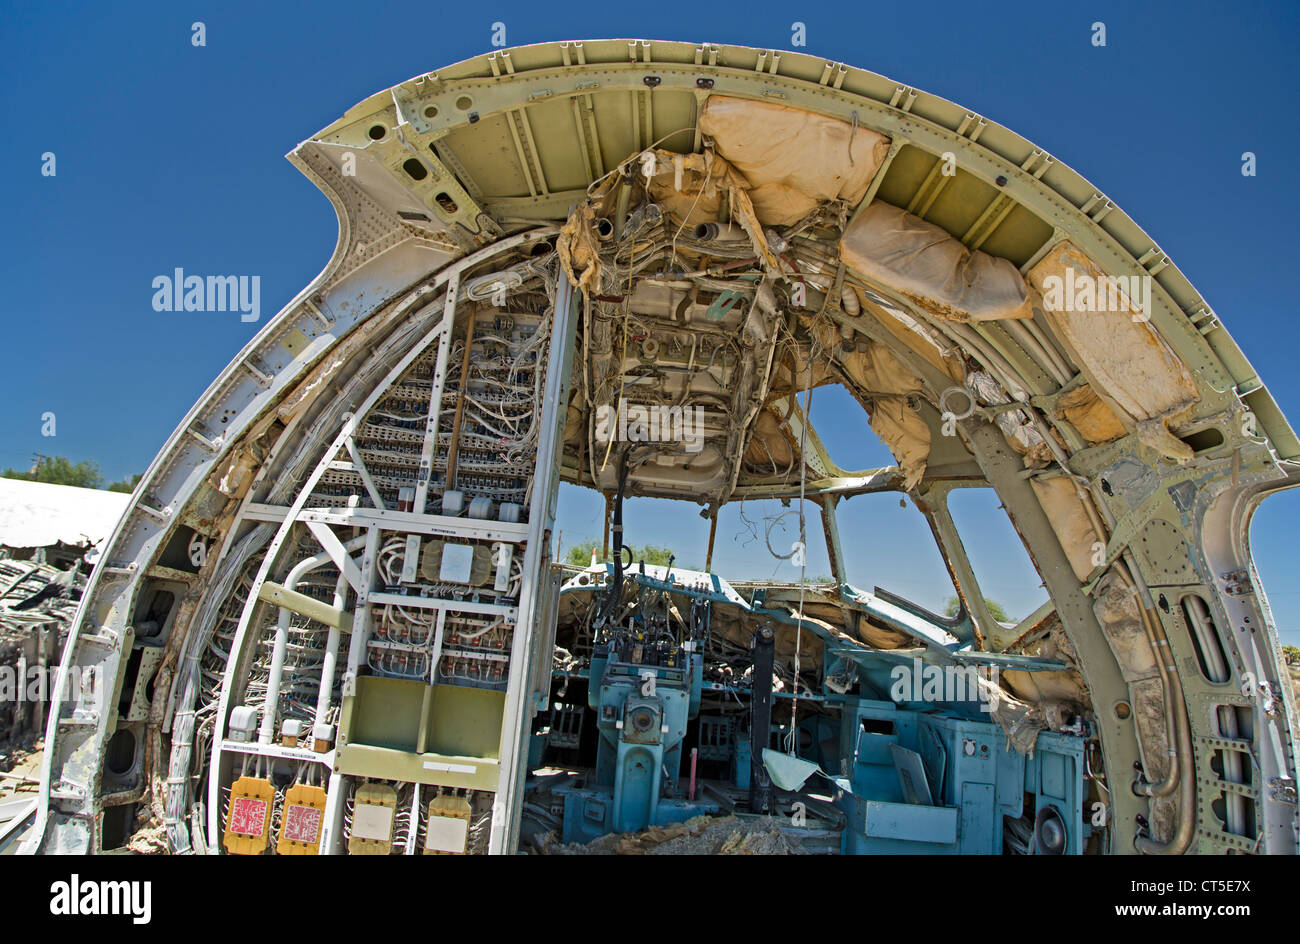 El Mirage, California - An airliner's cockpit in a scrapyard for aircraft parts. - Stock Image